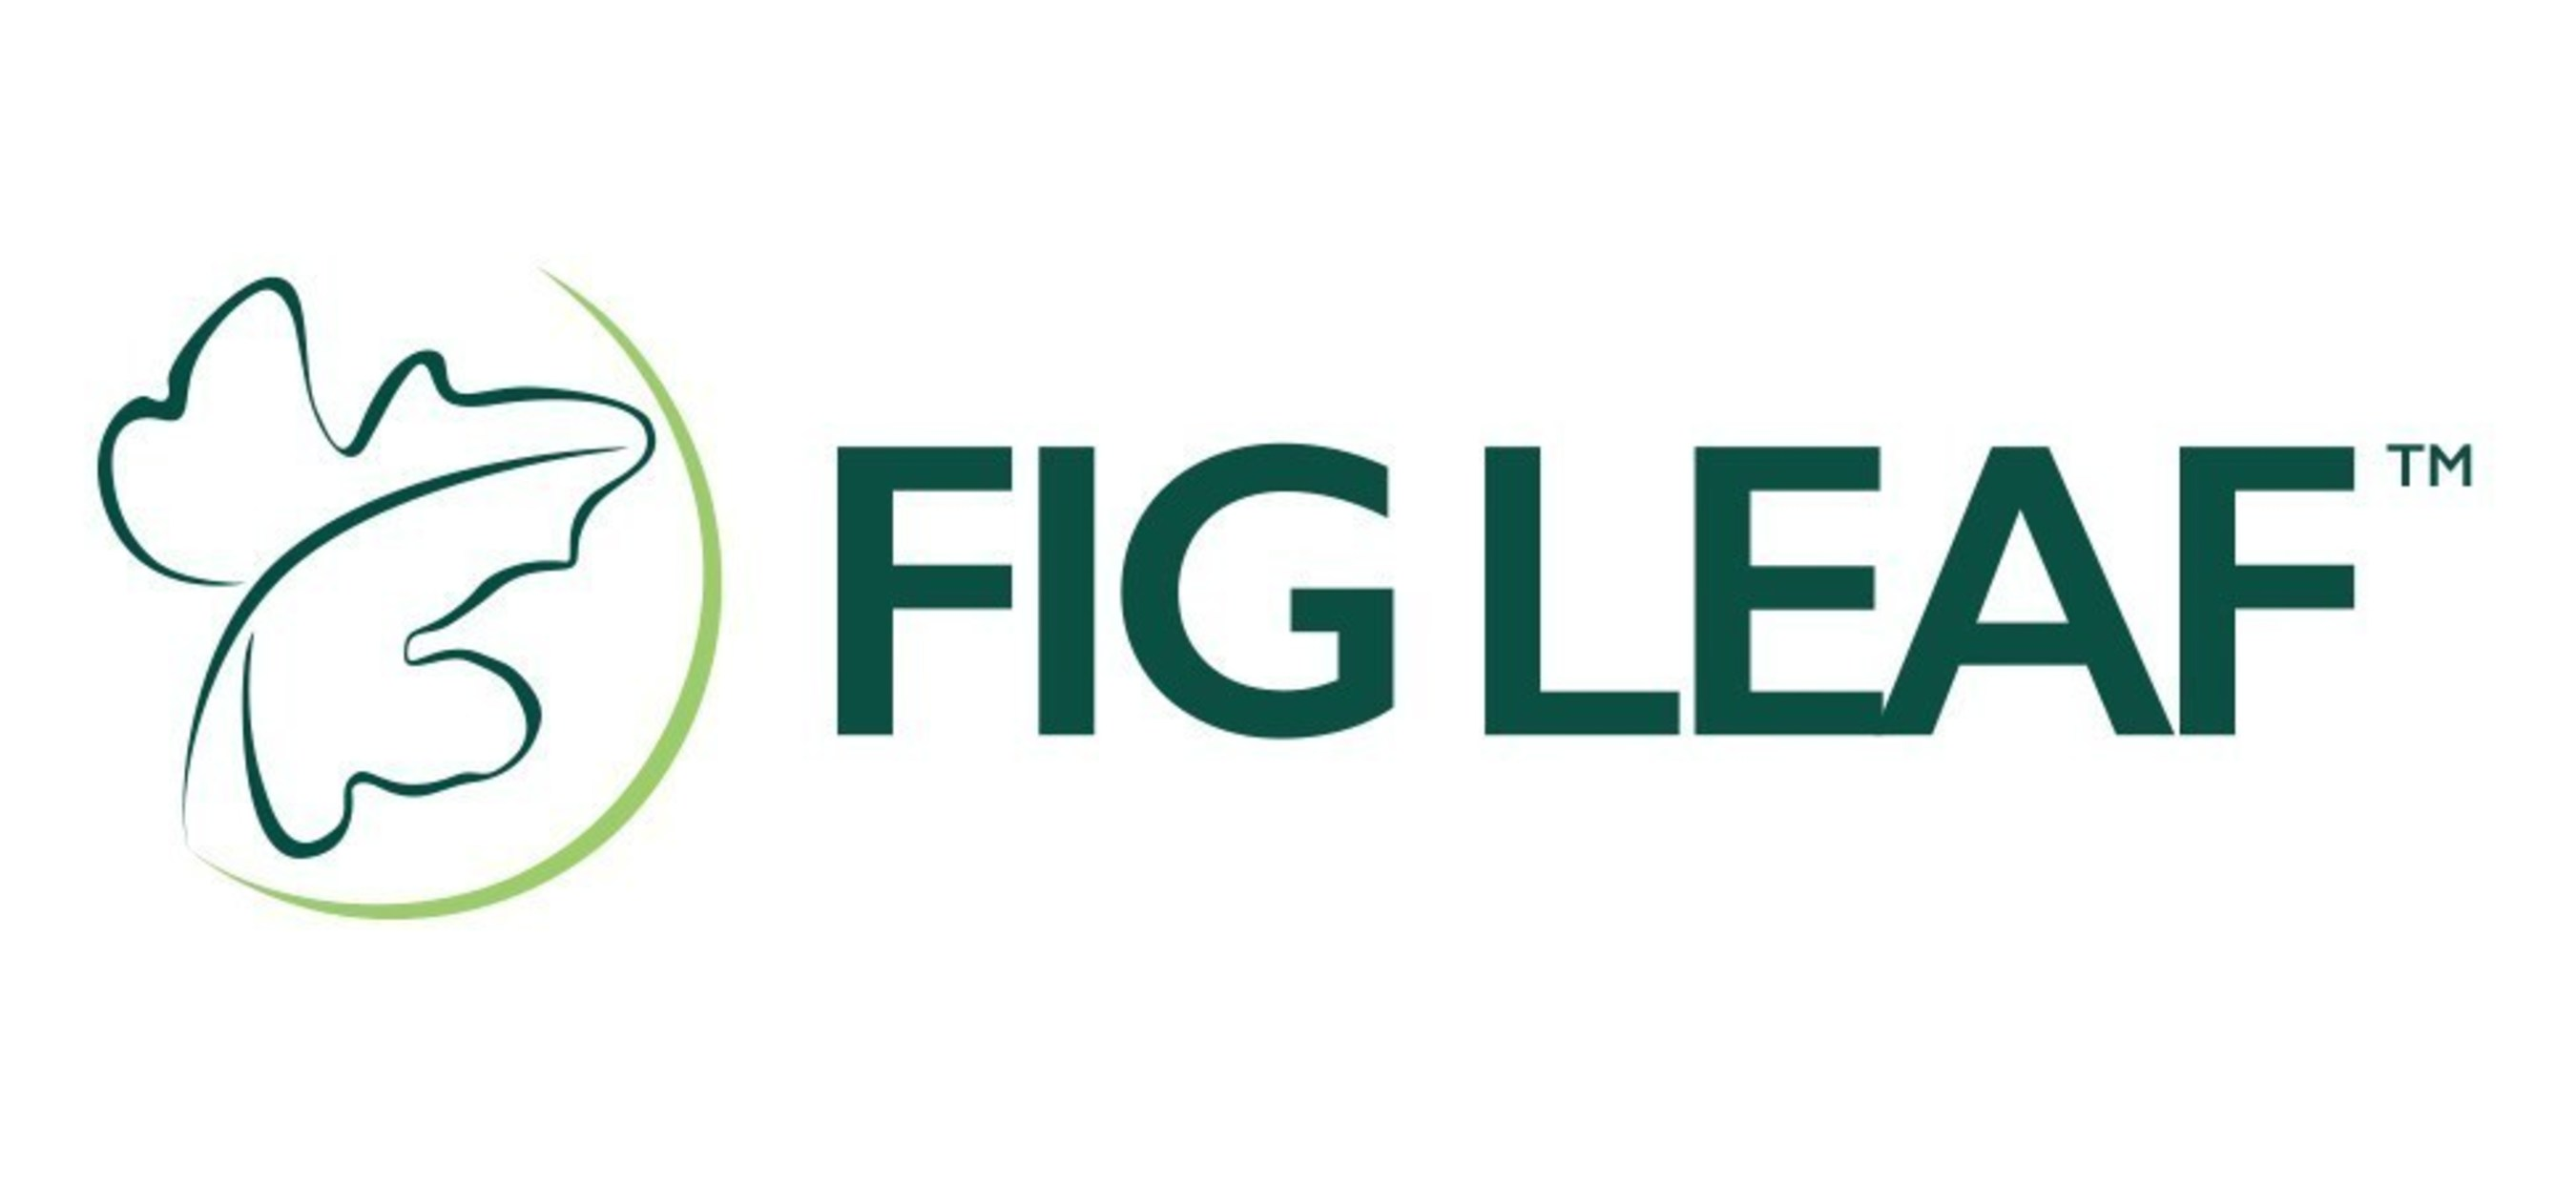 Fig Leaf Software is a full service digital agency and solutions integrator with 20 years of experience in marketing, design, web and mobile development, software sales and web professional training.  Fig Leaf is a certified Service Disabled Veteran Owned Small Business (SDVOSB). Learn more at www.figleaf.com